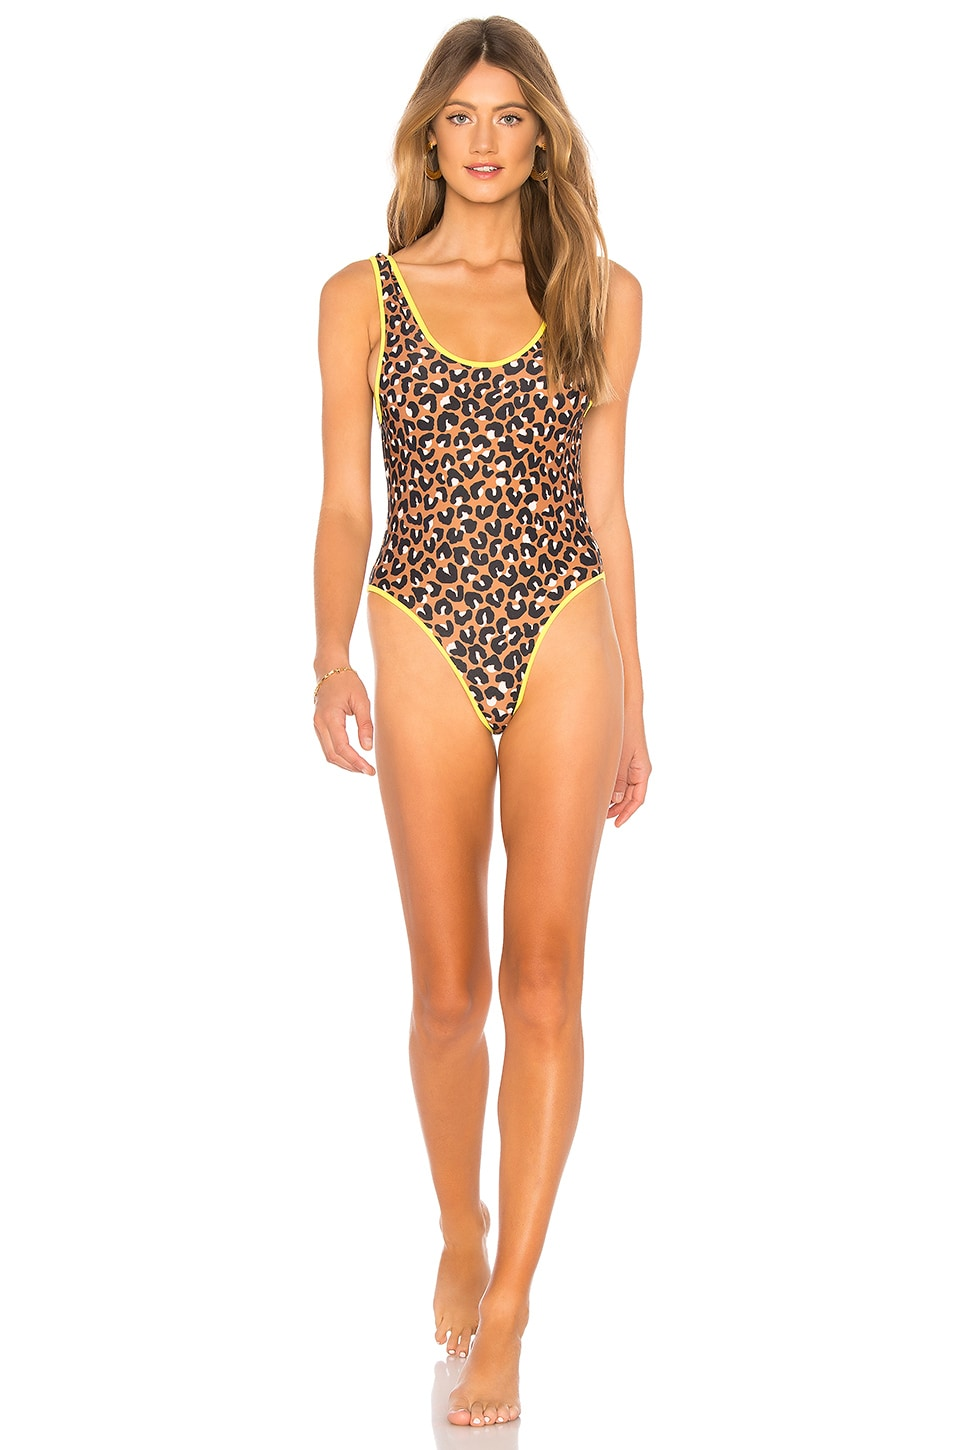 lovewave The Karlie One Piece in Leopard